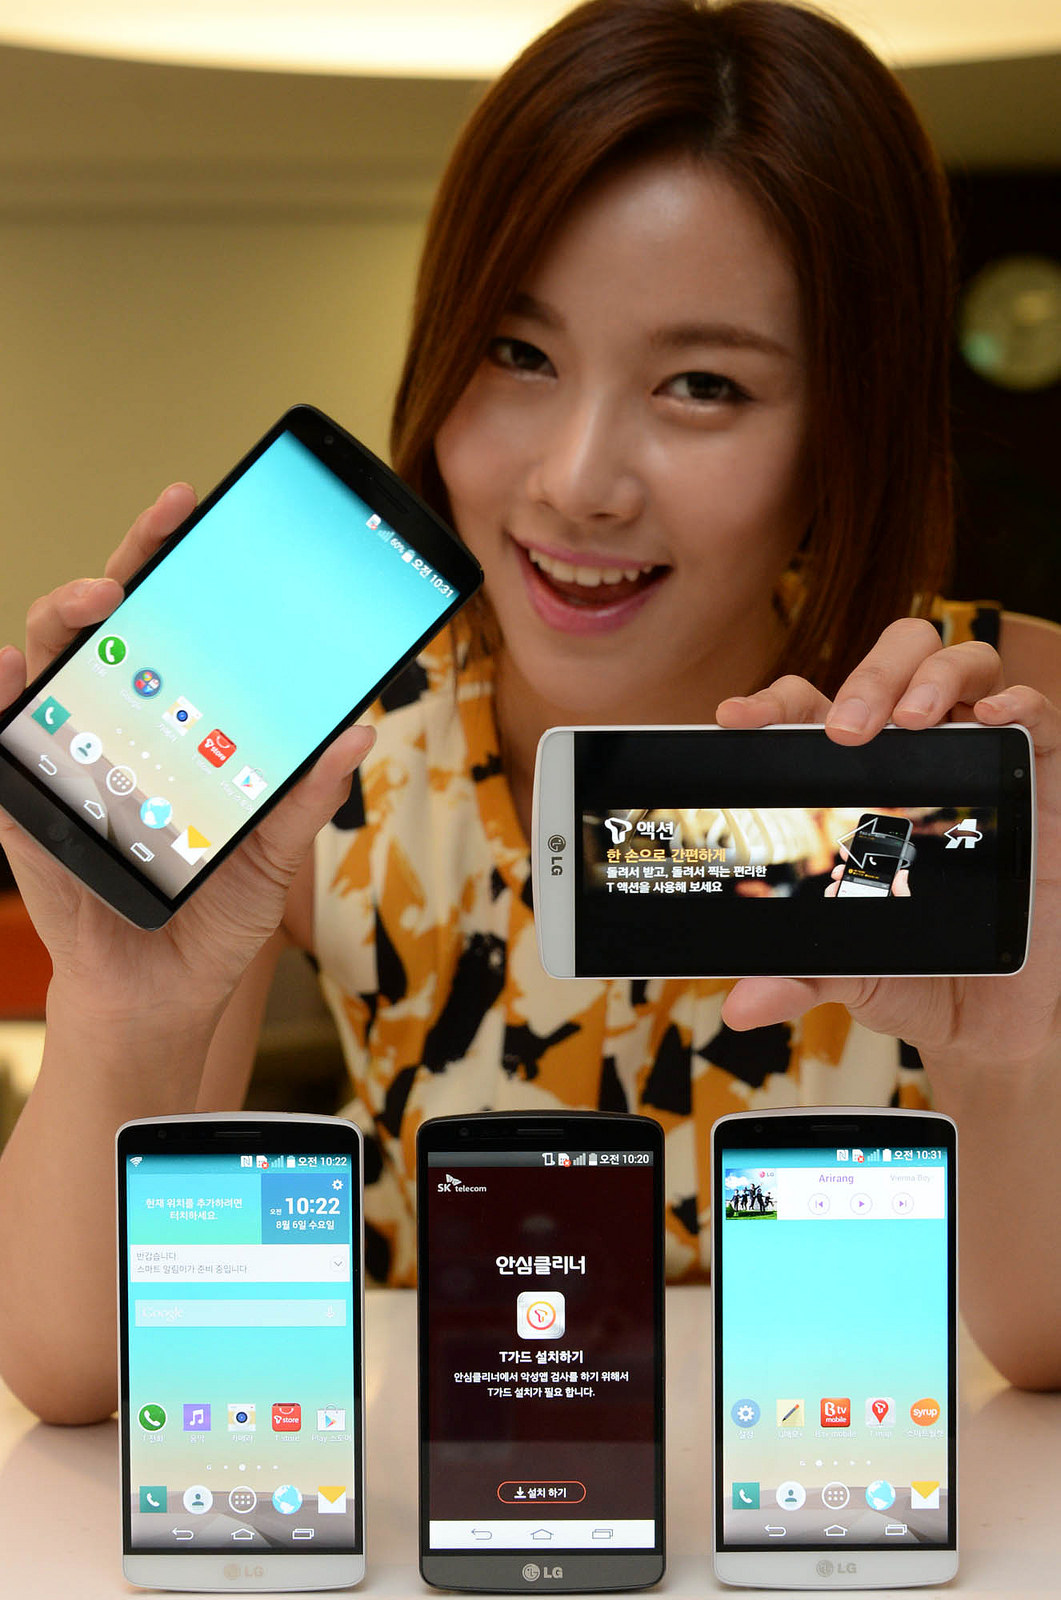 LG-G3-A-official-images (2)